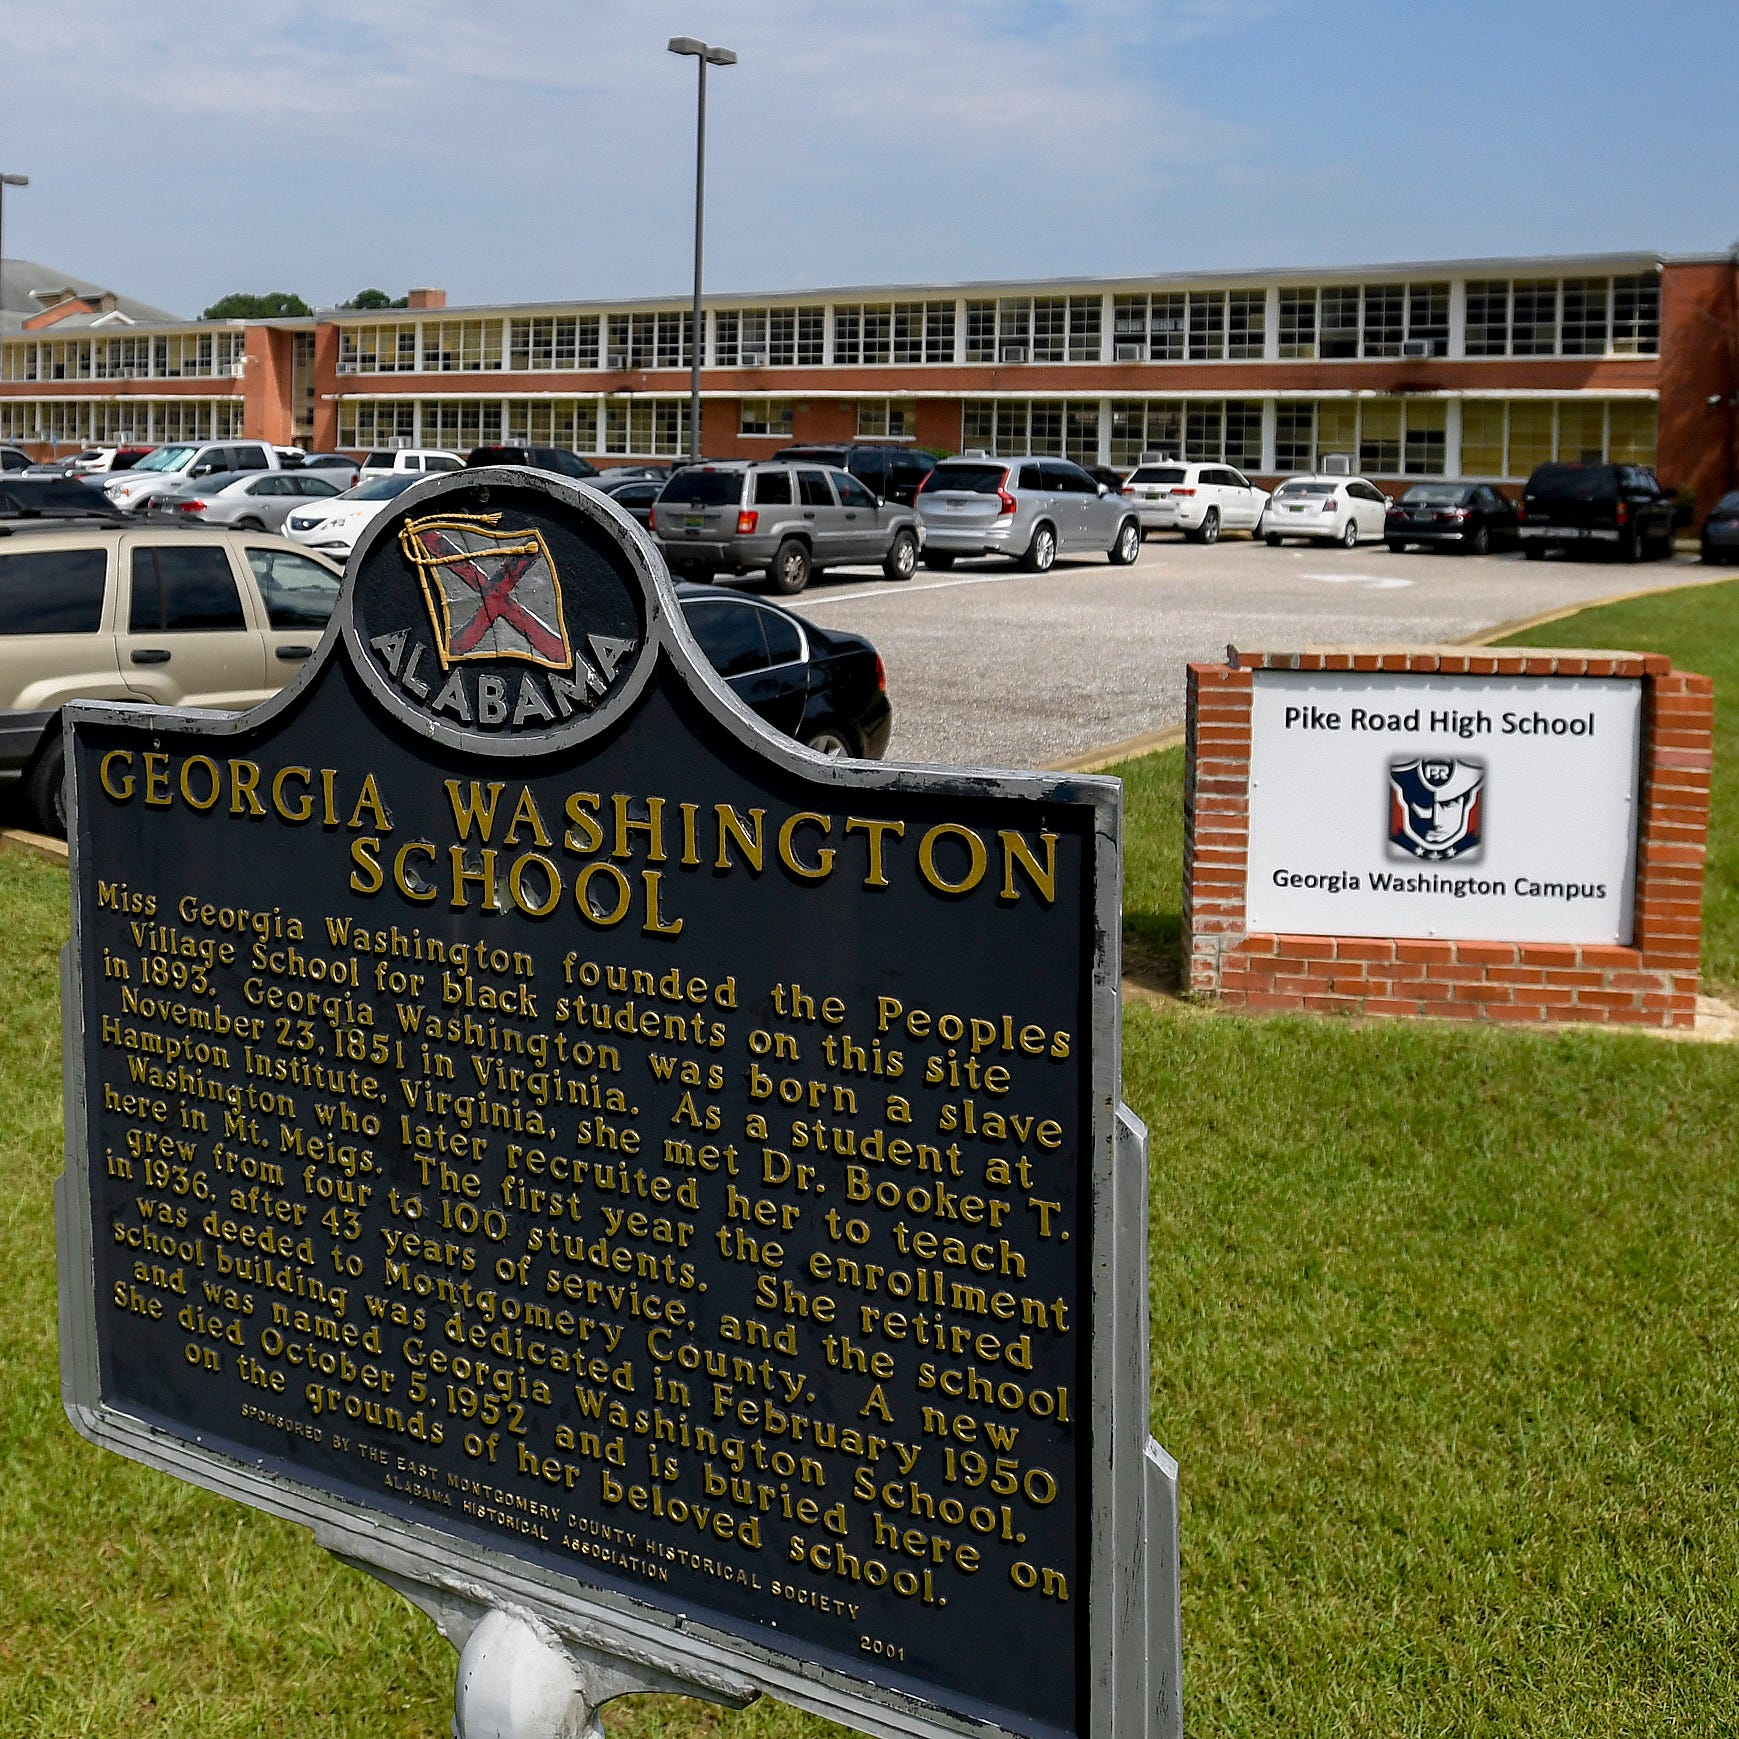 A look inside: Georgia Washington Middle School transforms into Pike Road High School